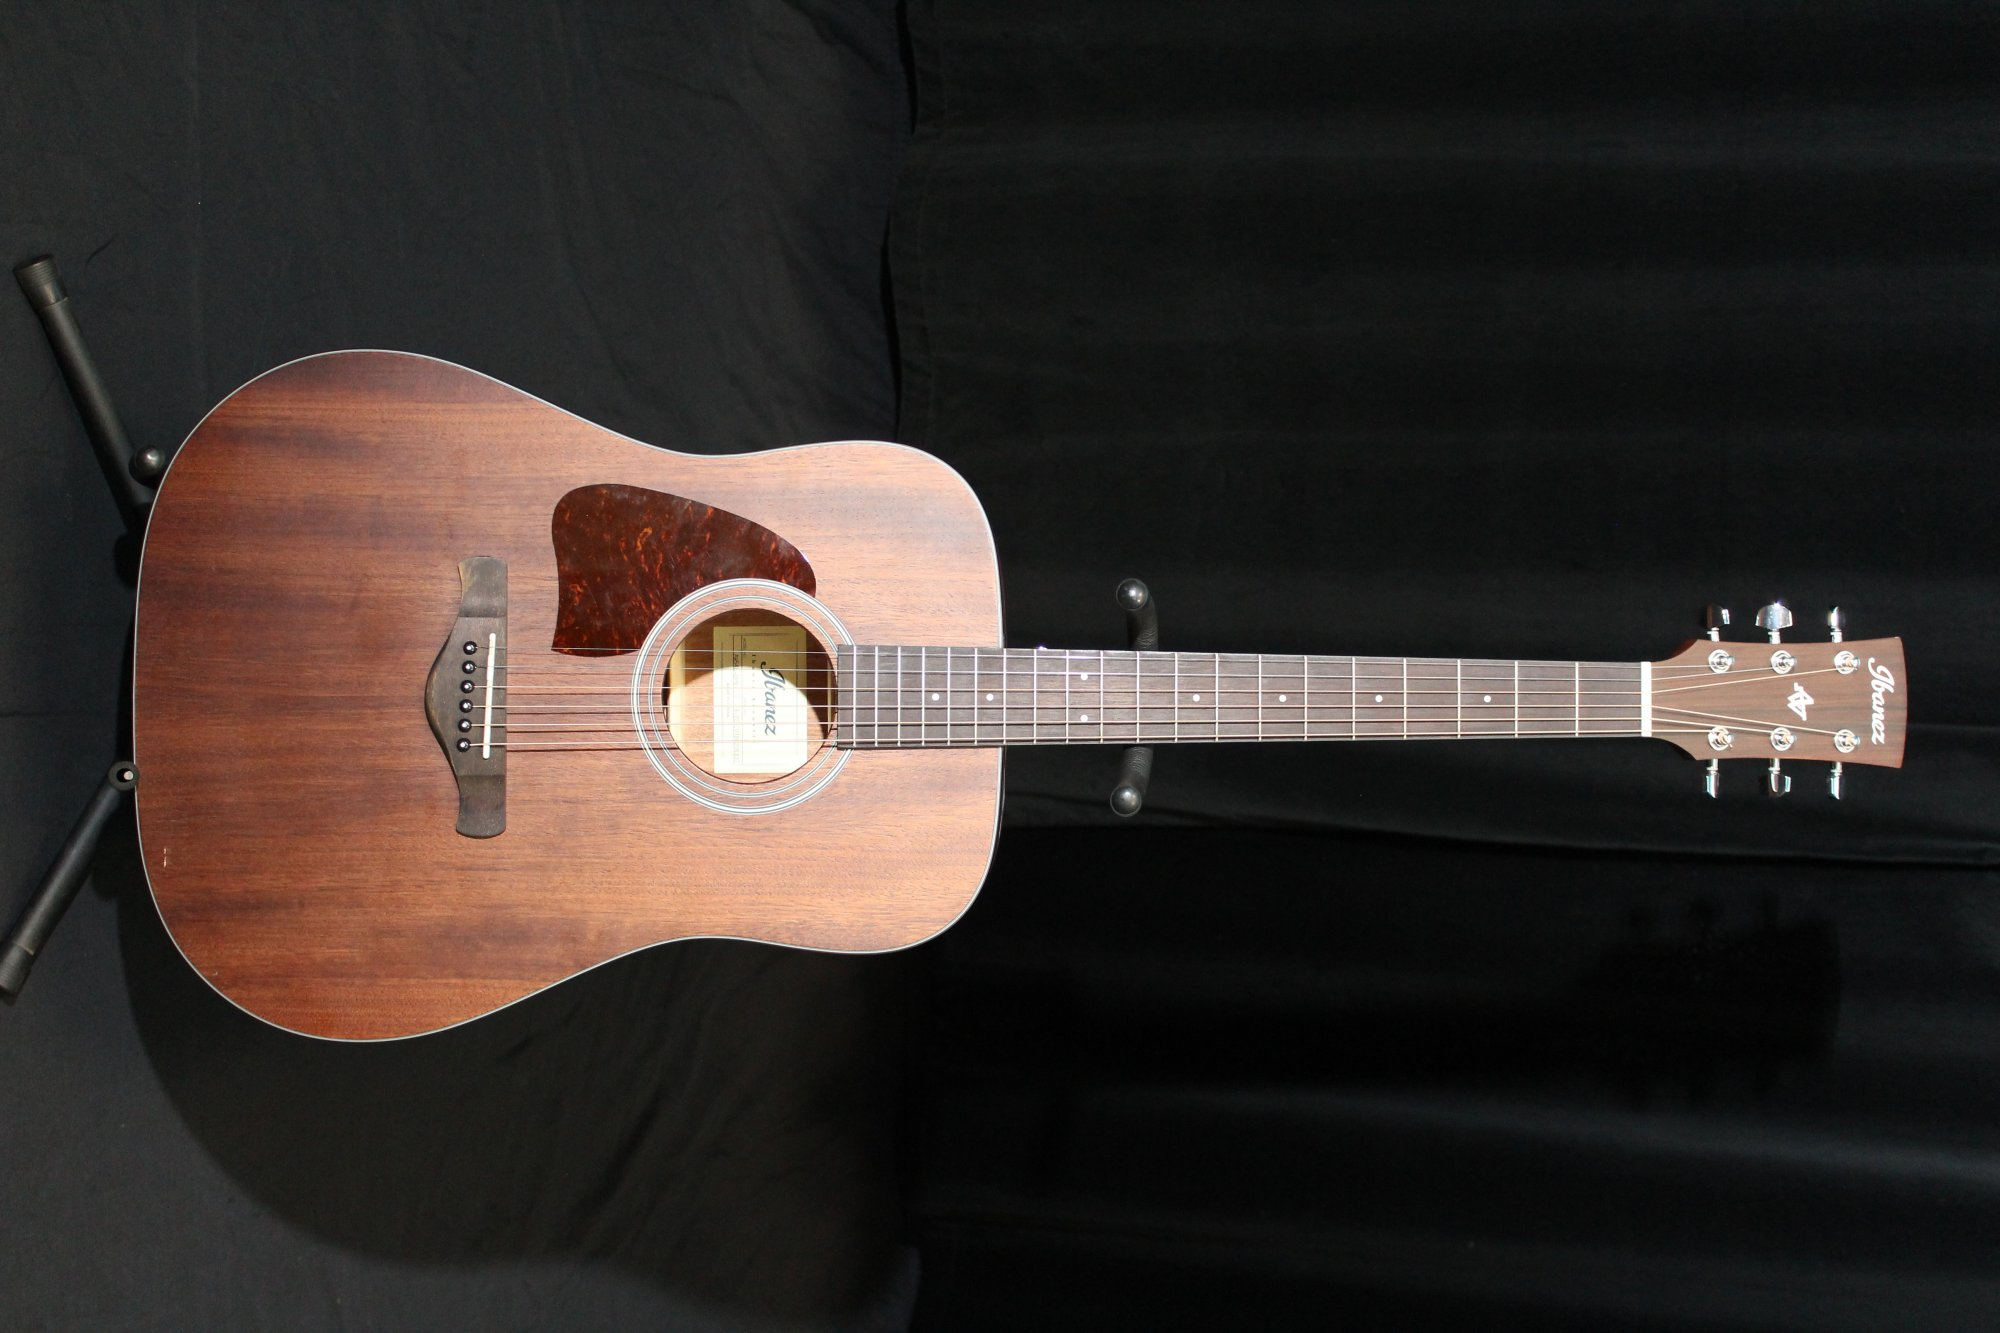 Preowned Ibanez AW54L-OPN Left Handed Dreadnaught